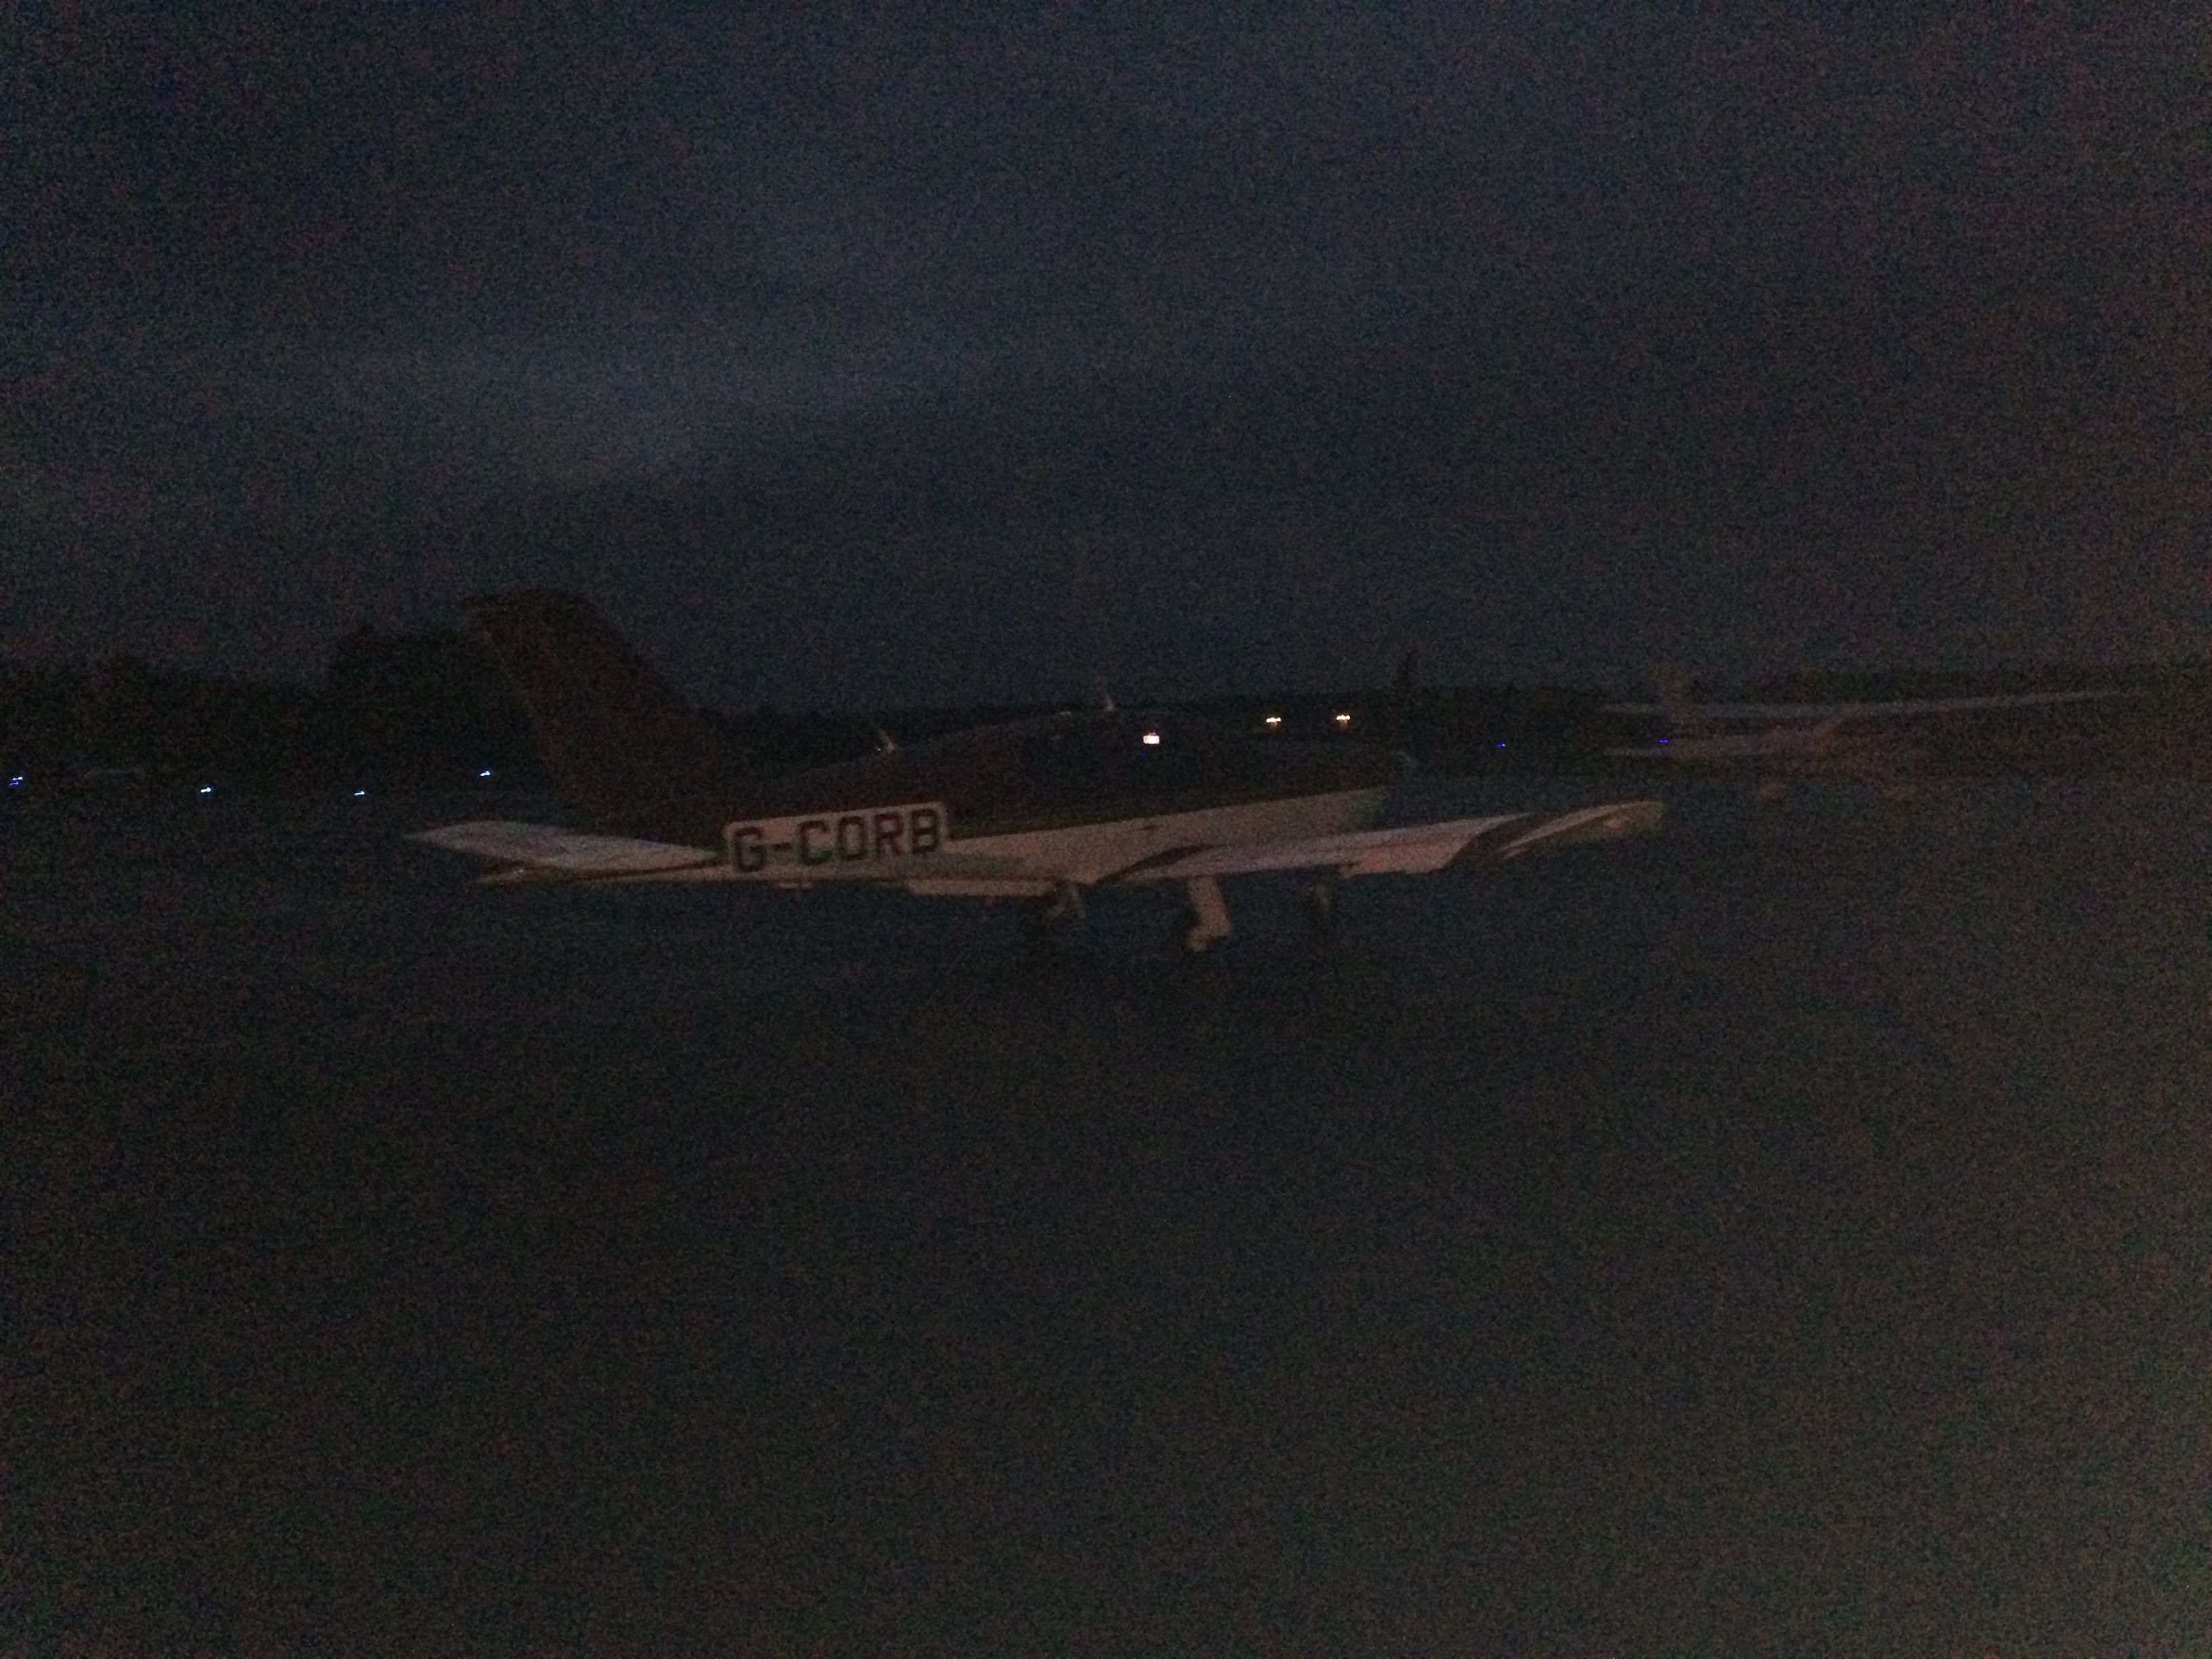 The white apron newport beach - Parked Up On The Main Apron At Oxford In The Dark